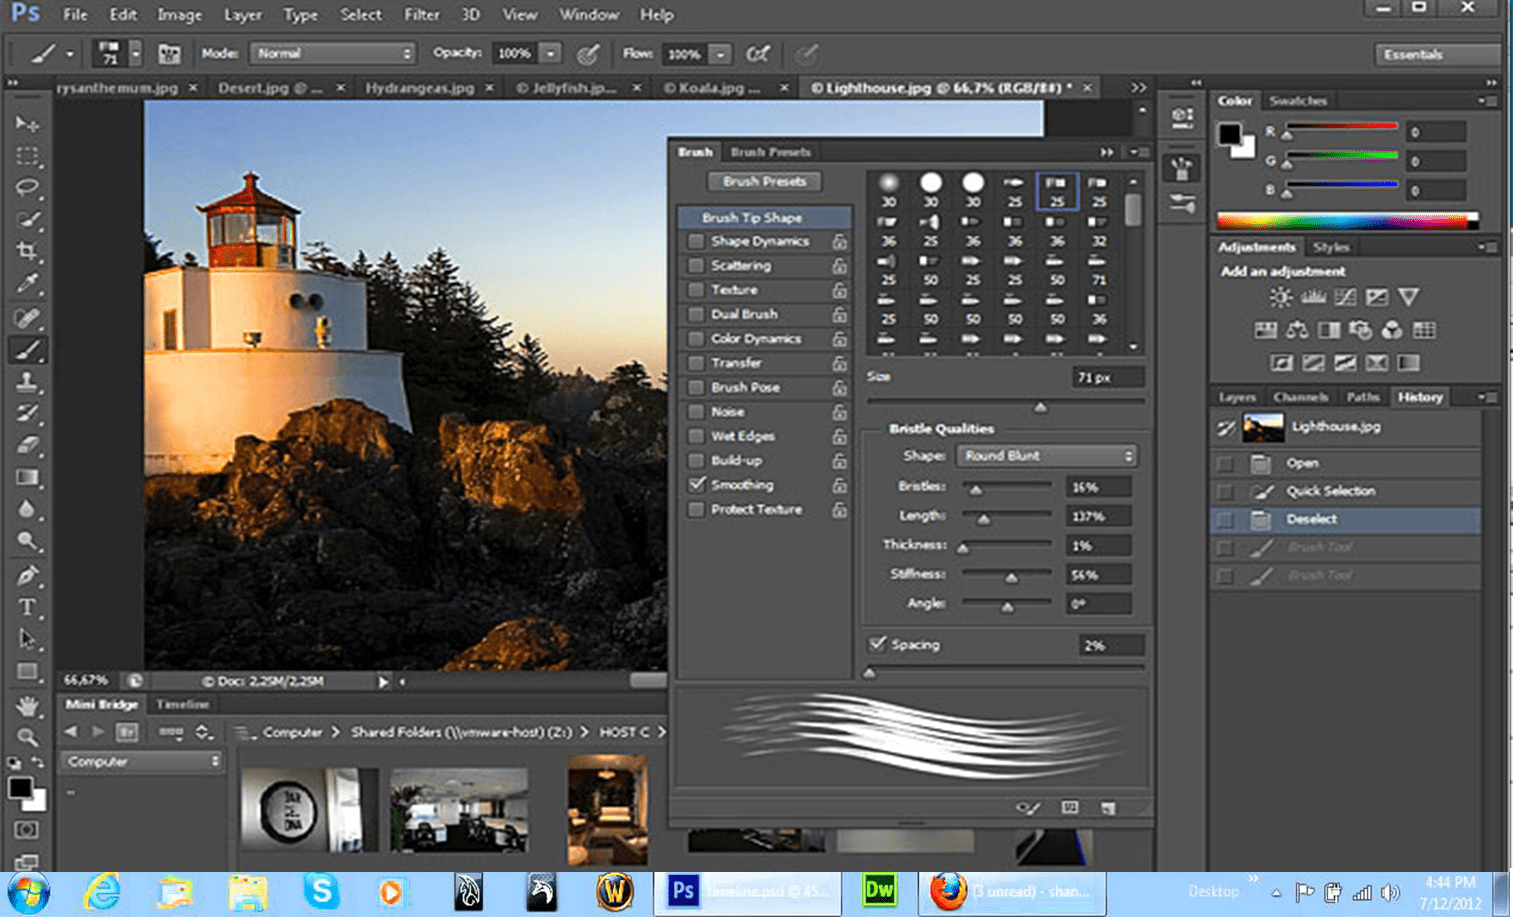 Photoshop cs6 extended-Une utilisation simple, facile et efficace